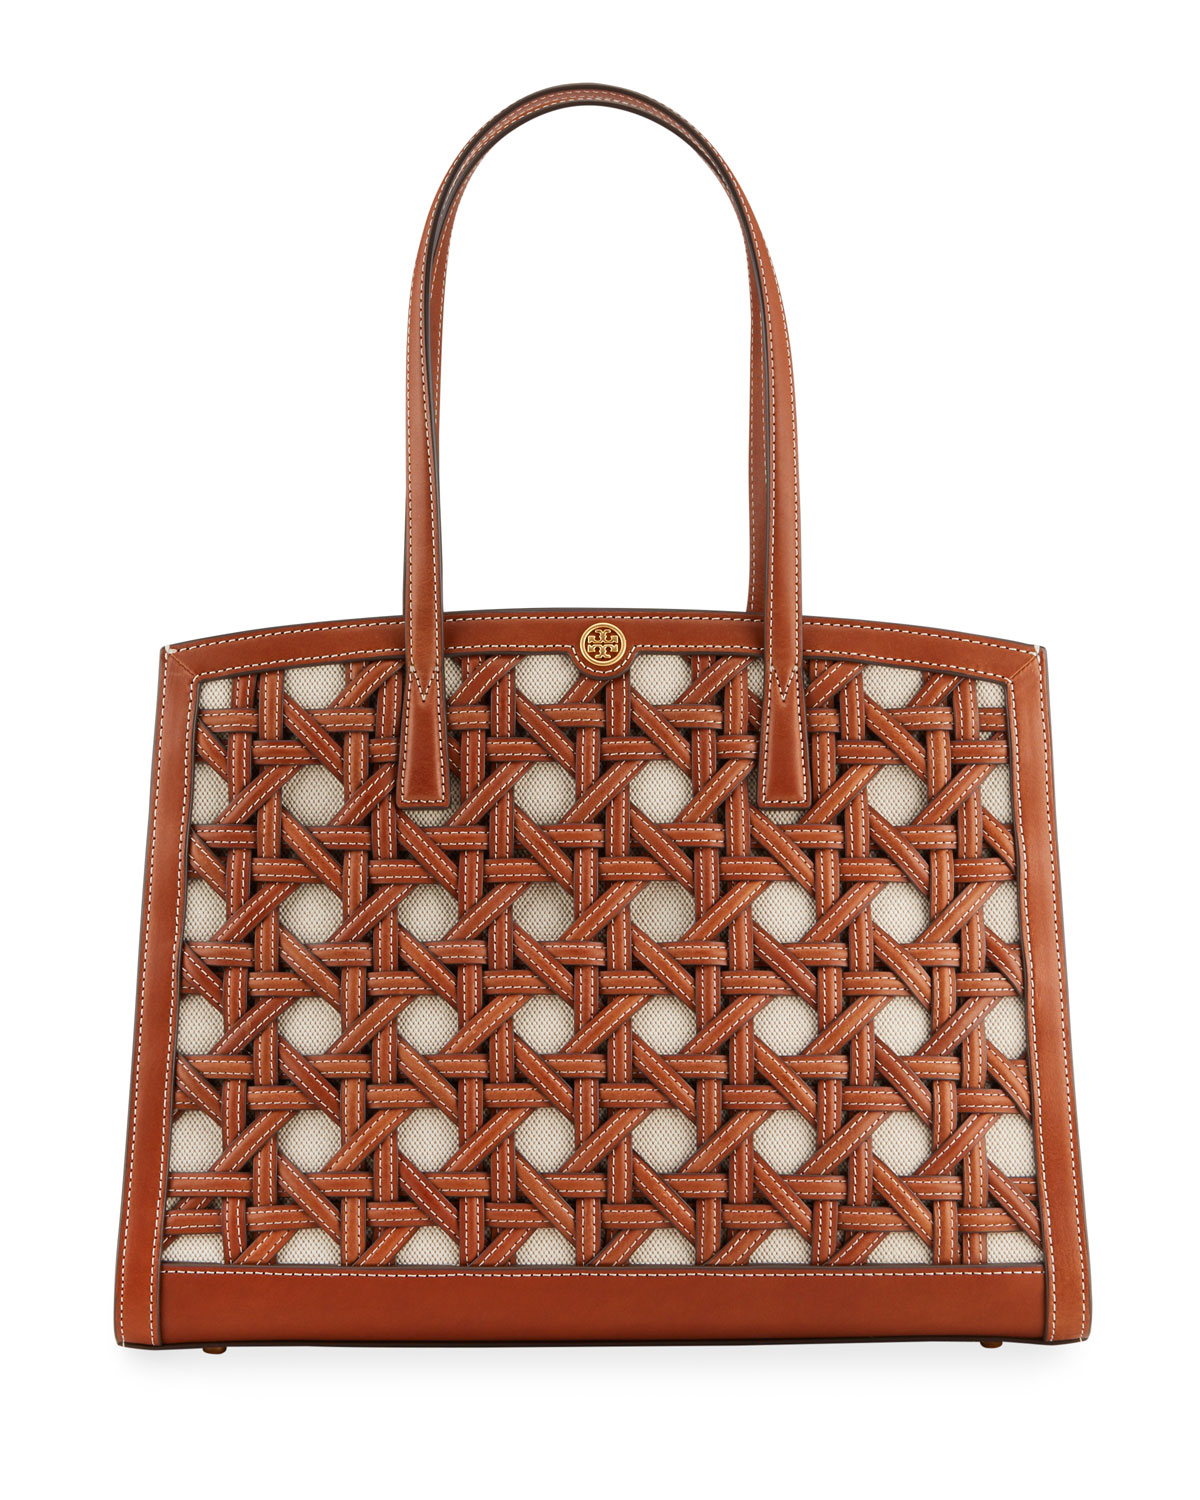 Tory Burch WALKER BASKETWEAVE TOTE SATCHEL BAG